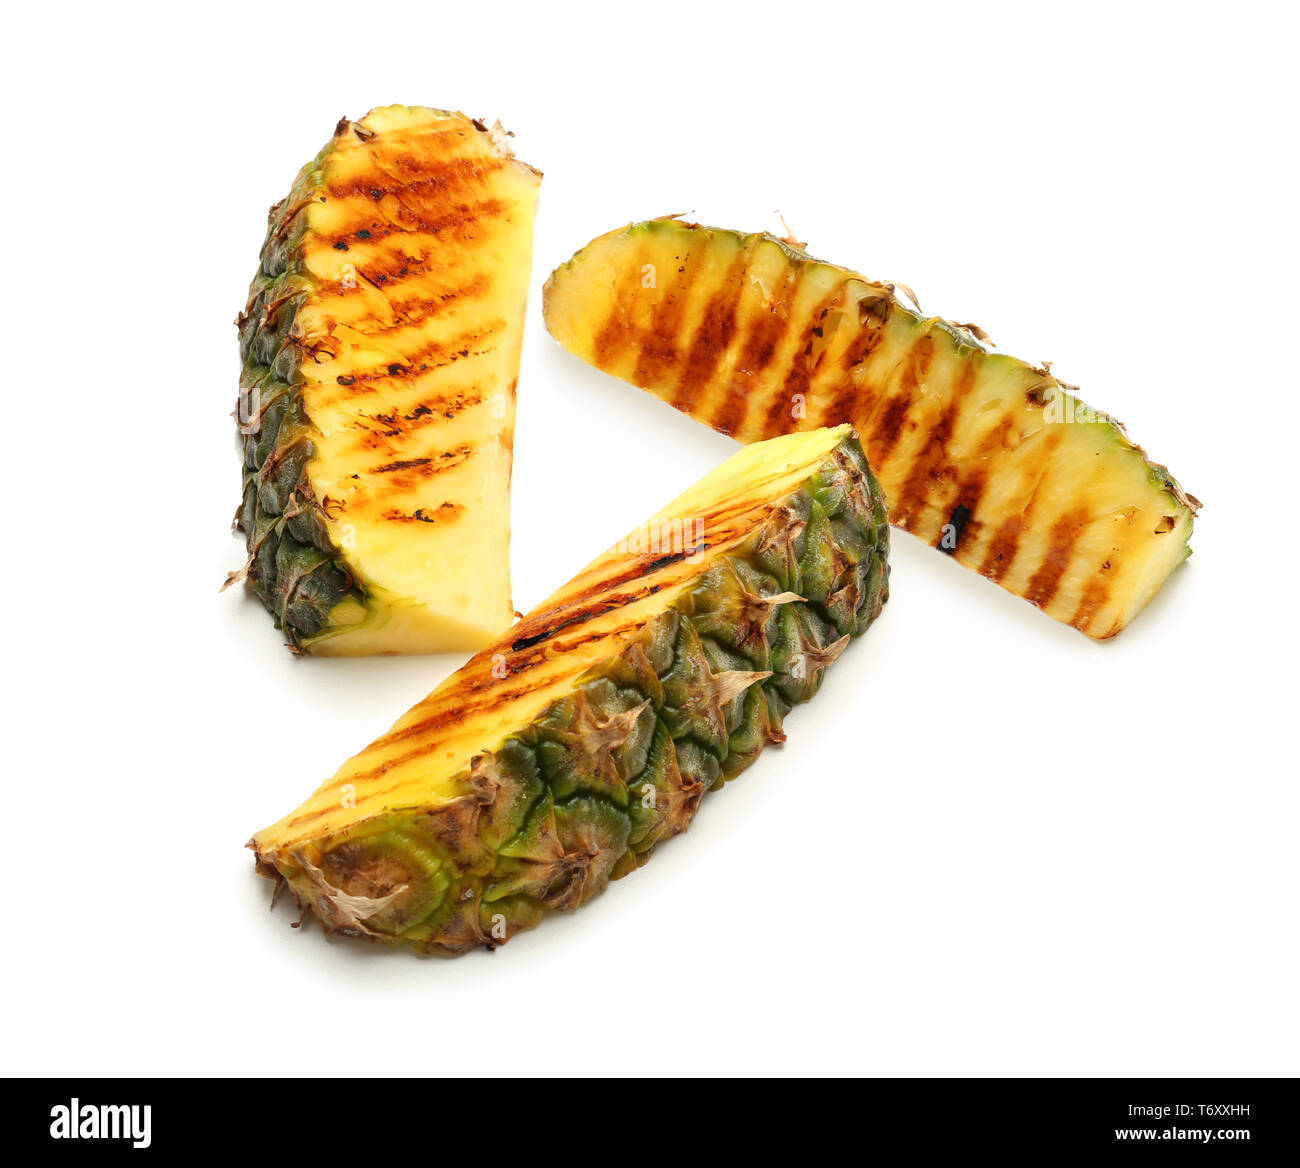 Grilled pineapple slices on white background - Stock Image